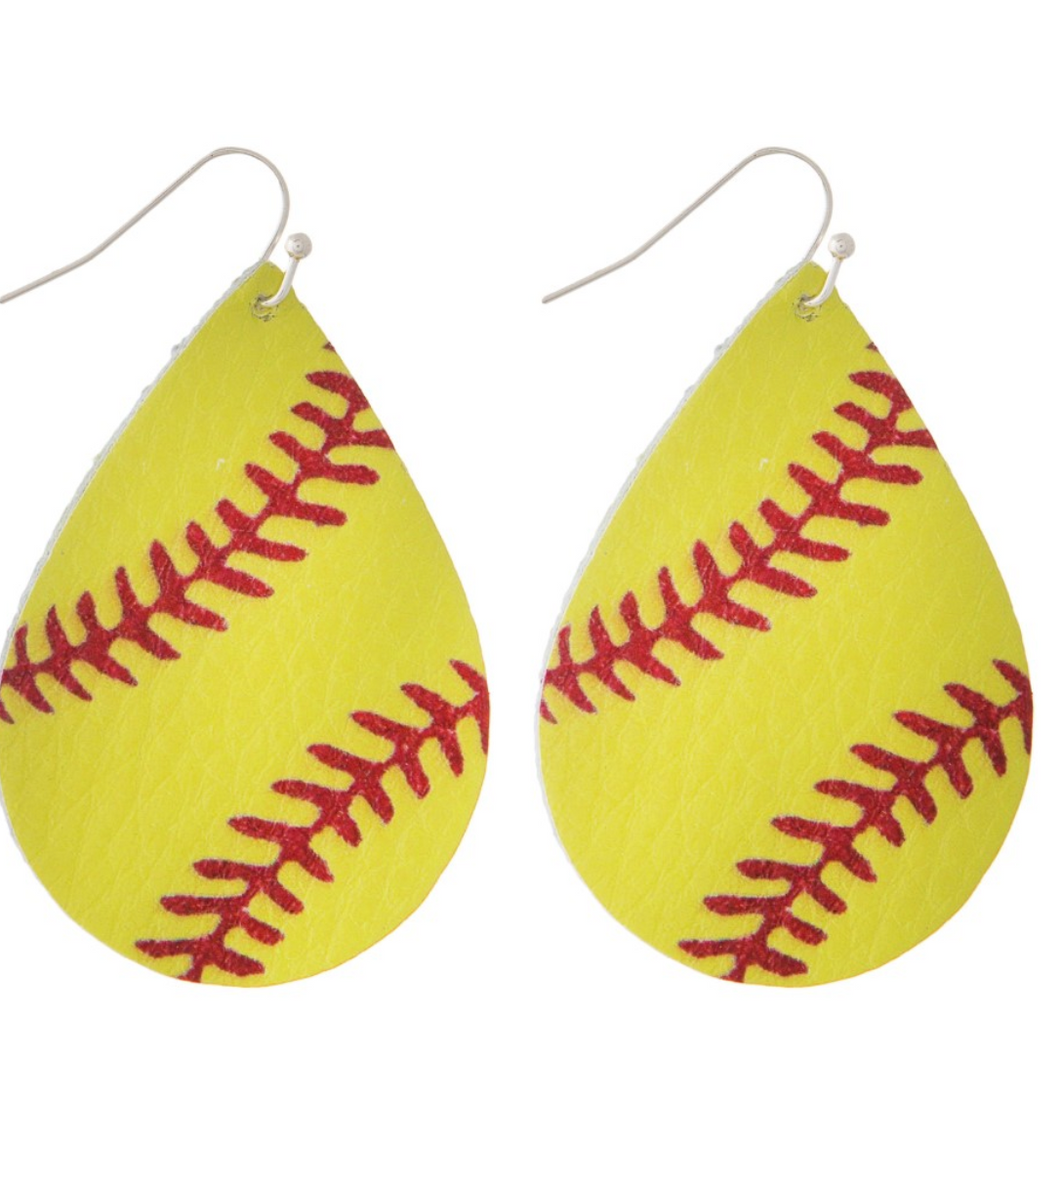 Softball Leather Fishhook Earrings